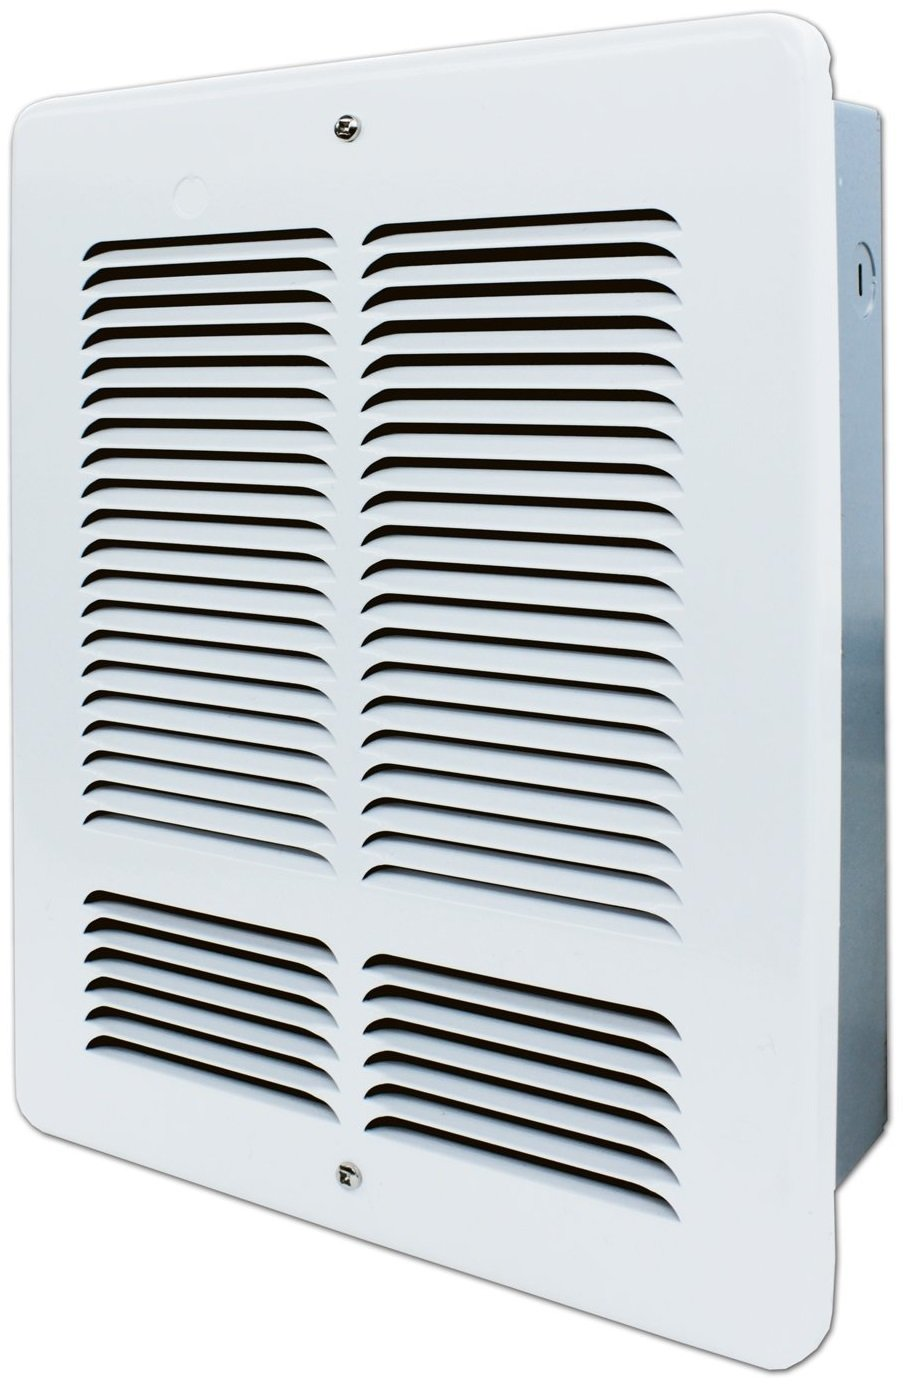 King W2410 1000-Watt 240-Volt Wall Heater, White